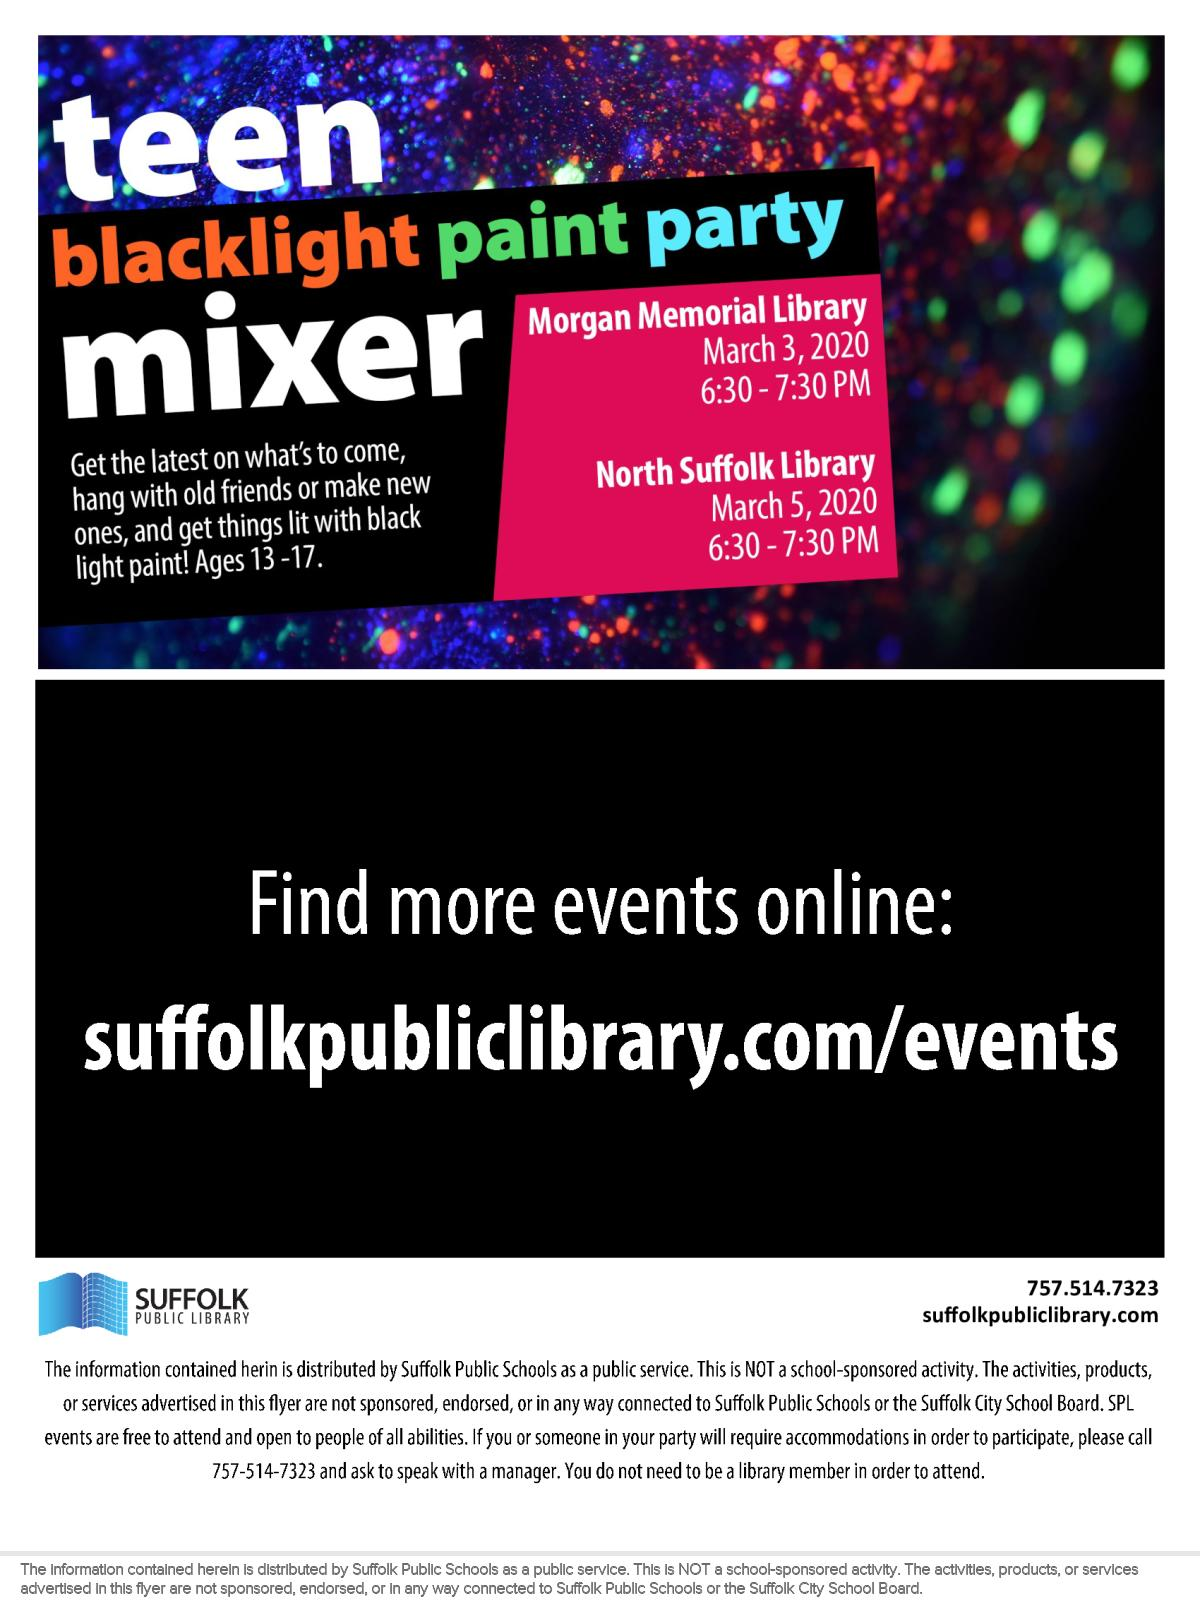 Image of a flyer titled Teen Blacklight Paint Party Mixer